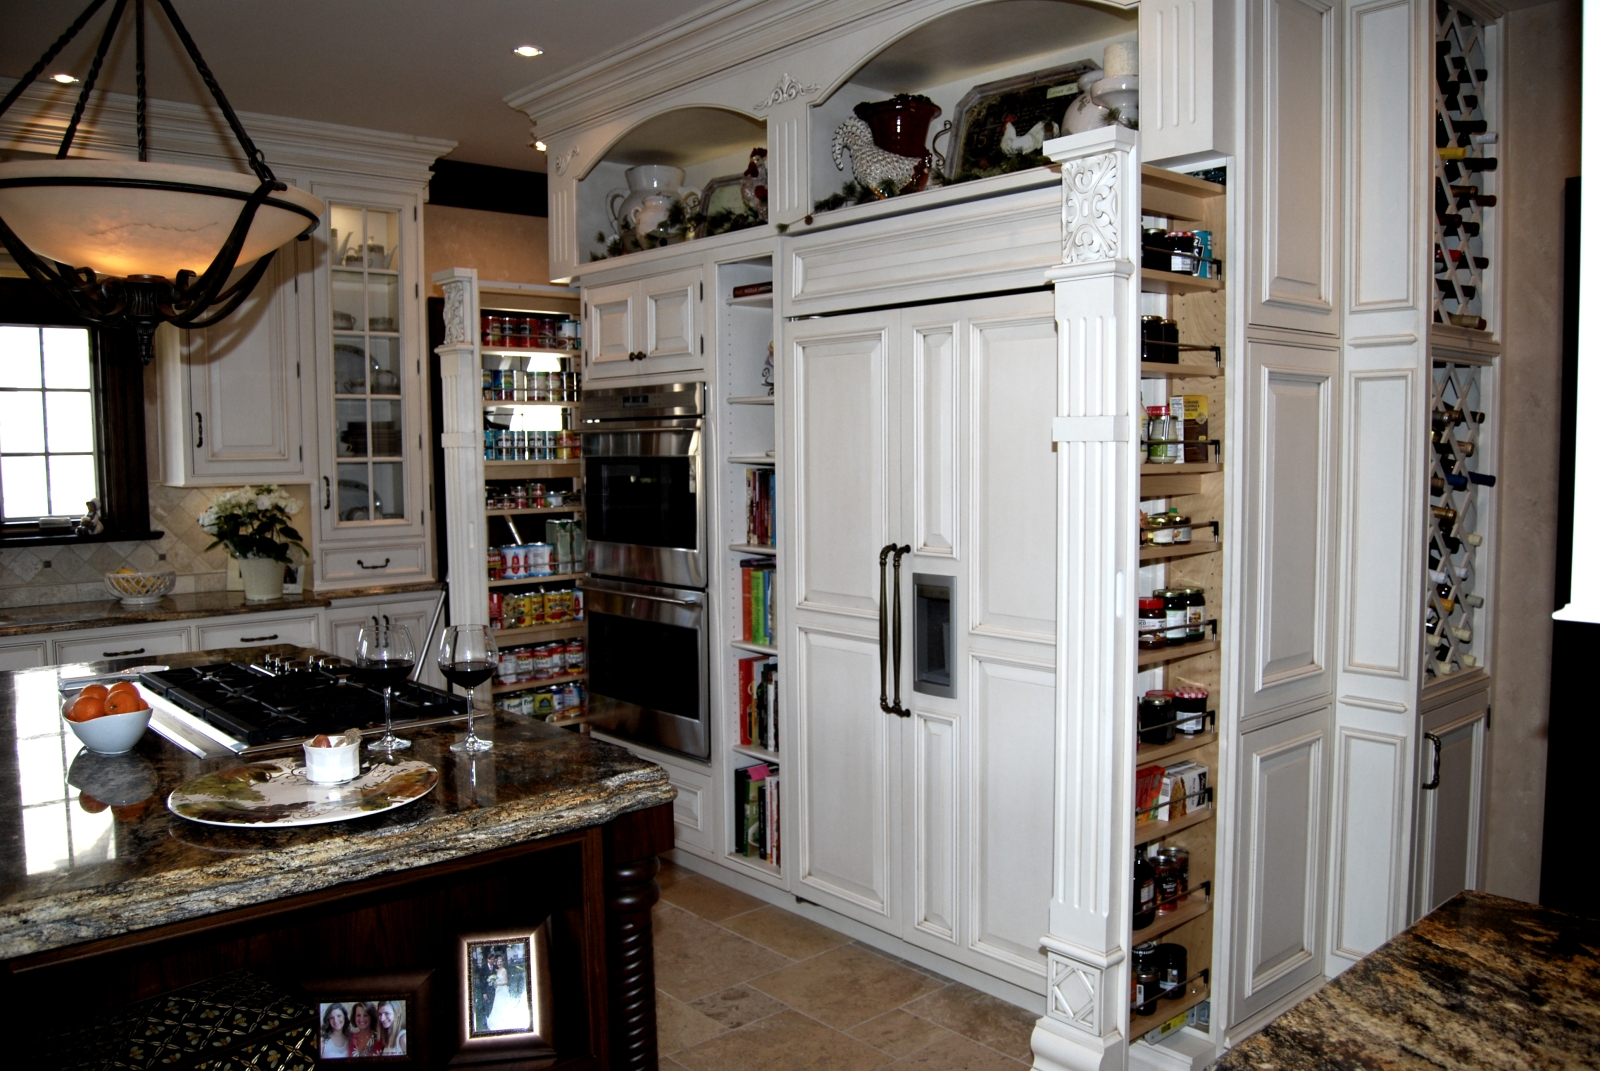 kitchen (55).JPG